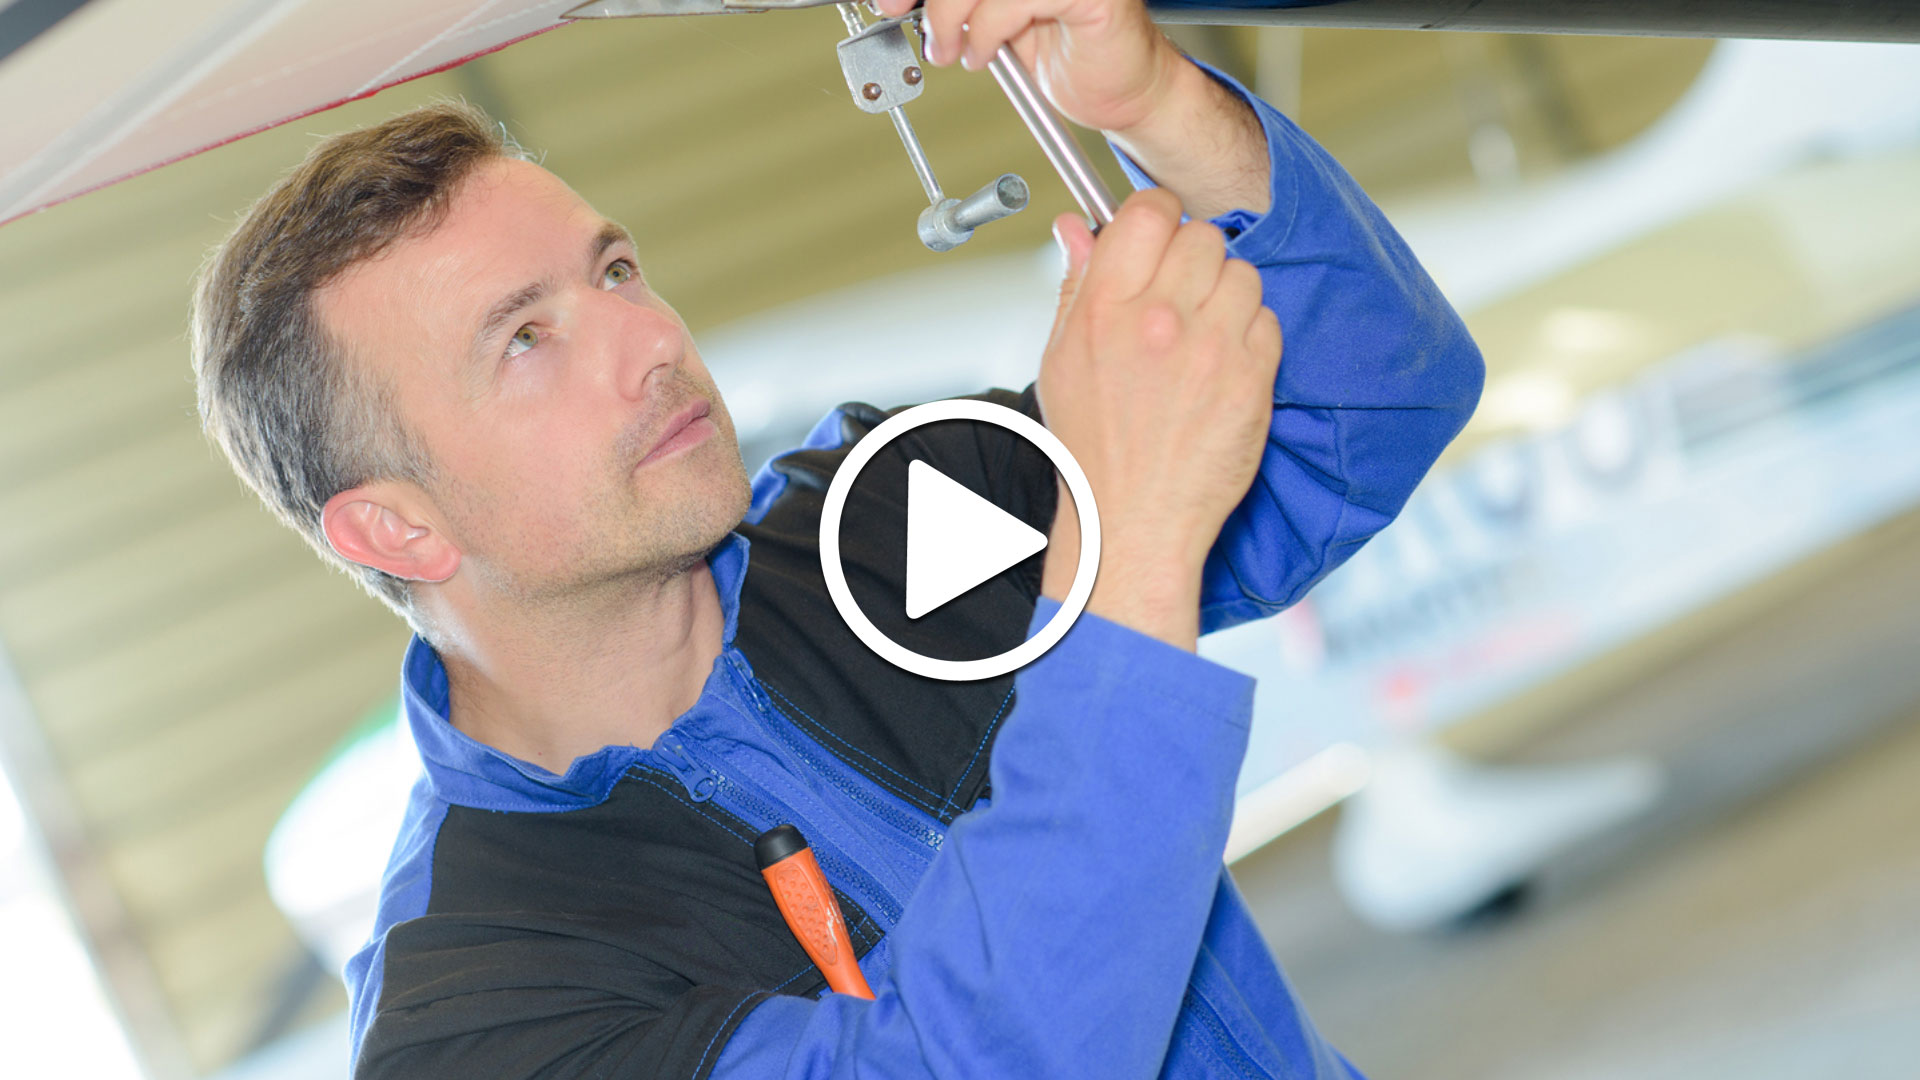 Watch our careers video for available job opening FAA Licensed Airframe and Powerplant Mechanics in Tampa, FL